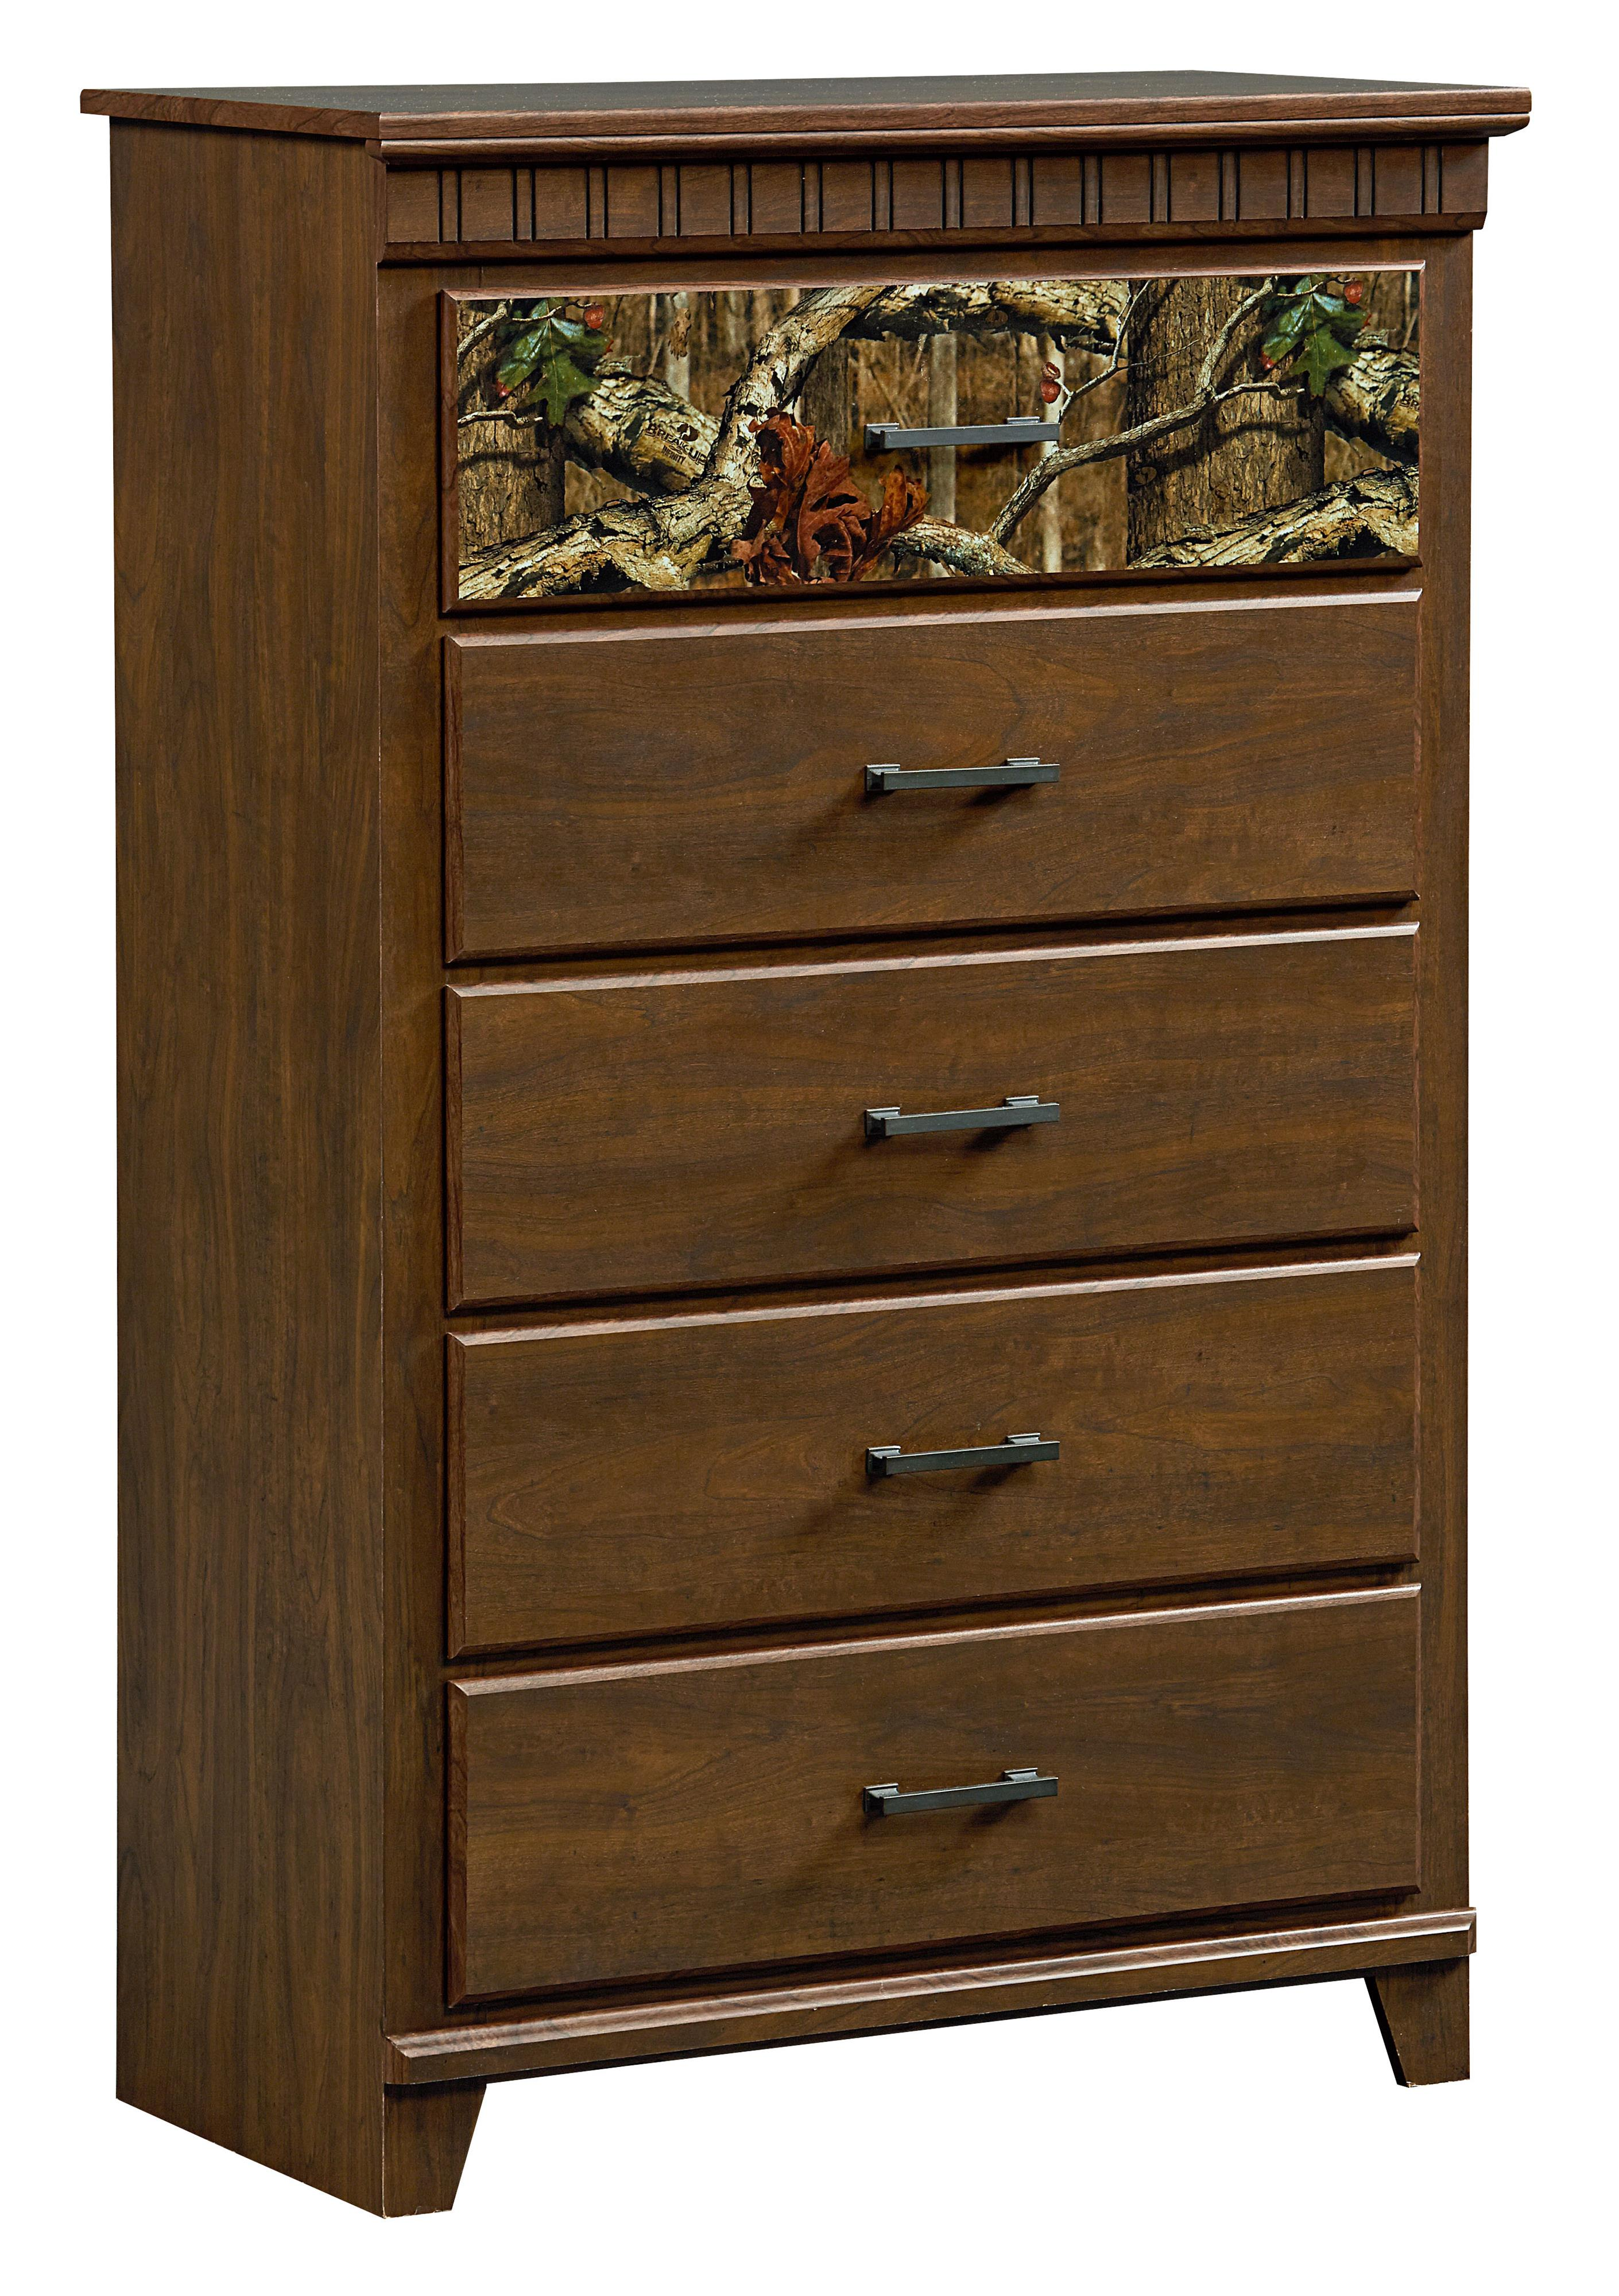 Standard Furniture Solitude Chest of Drawers                  - Item Number: 52955